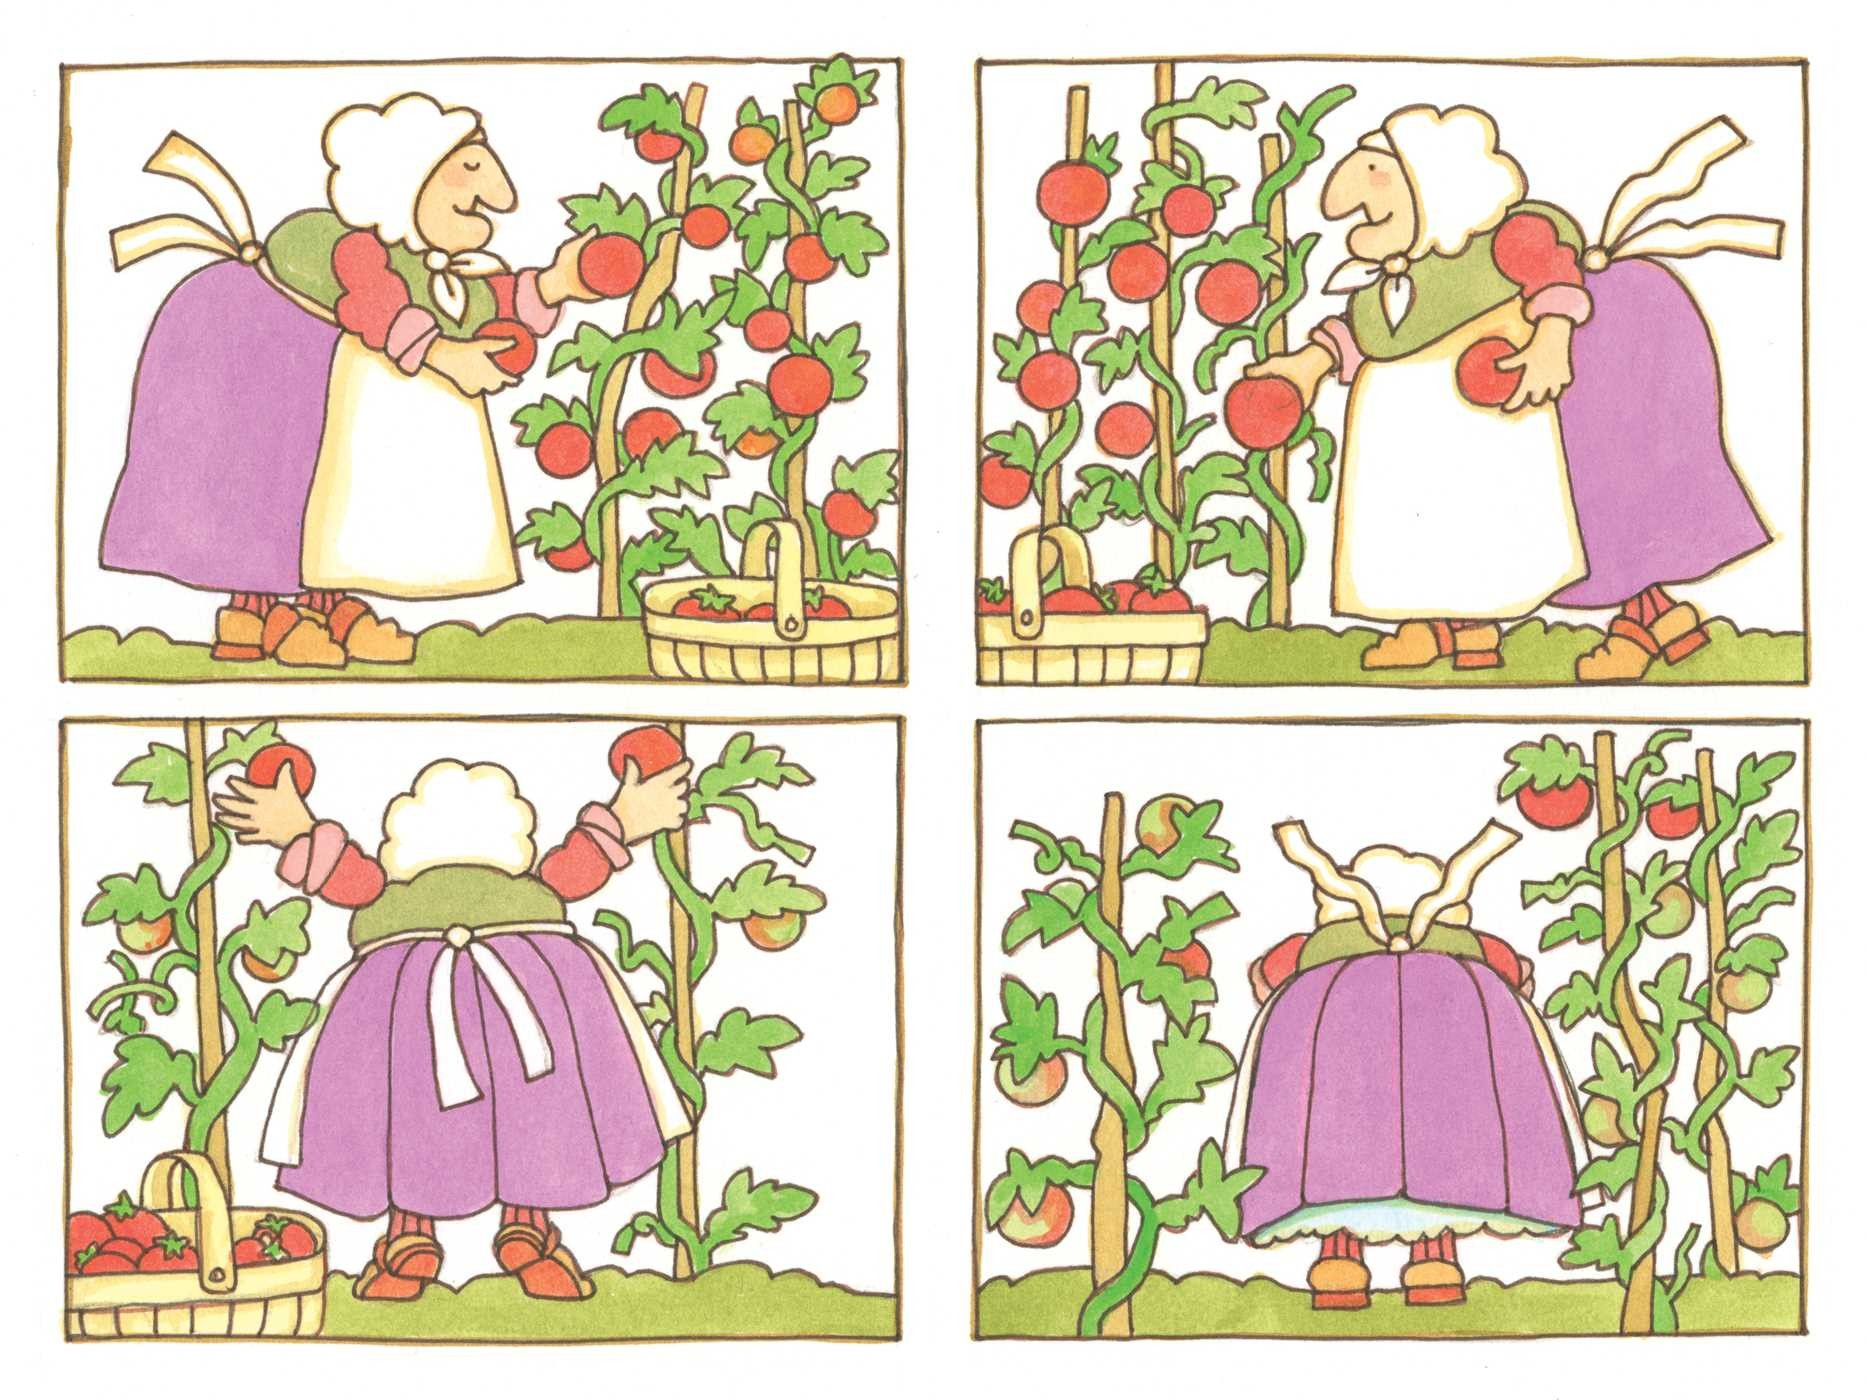 Strega nona and her tomatoes 9781481481342.in02